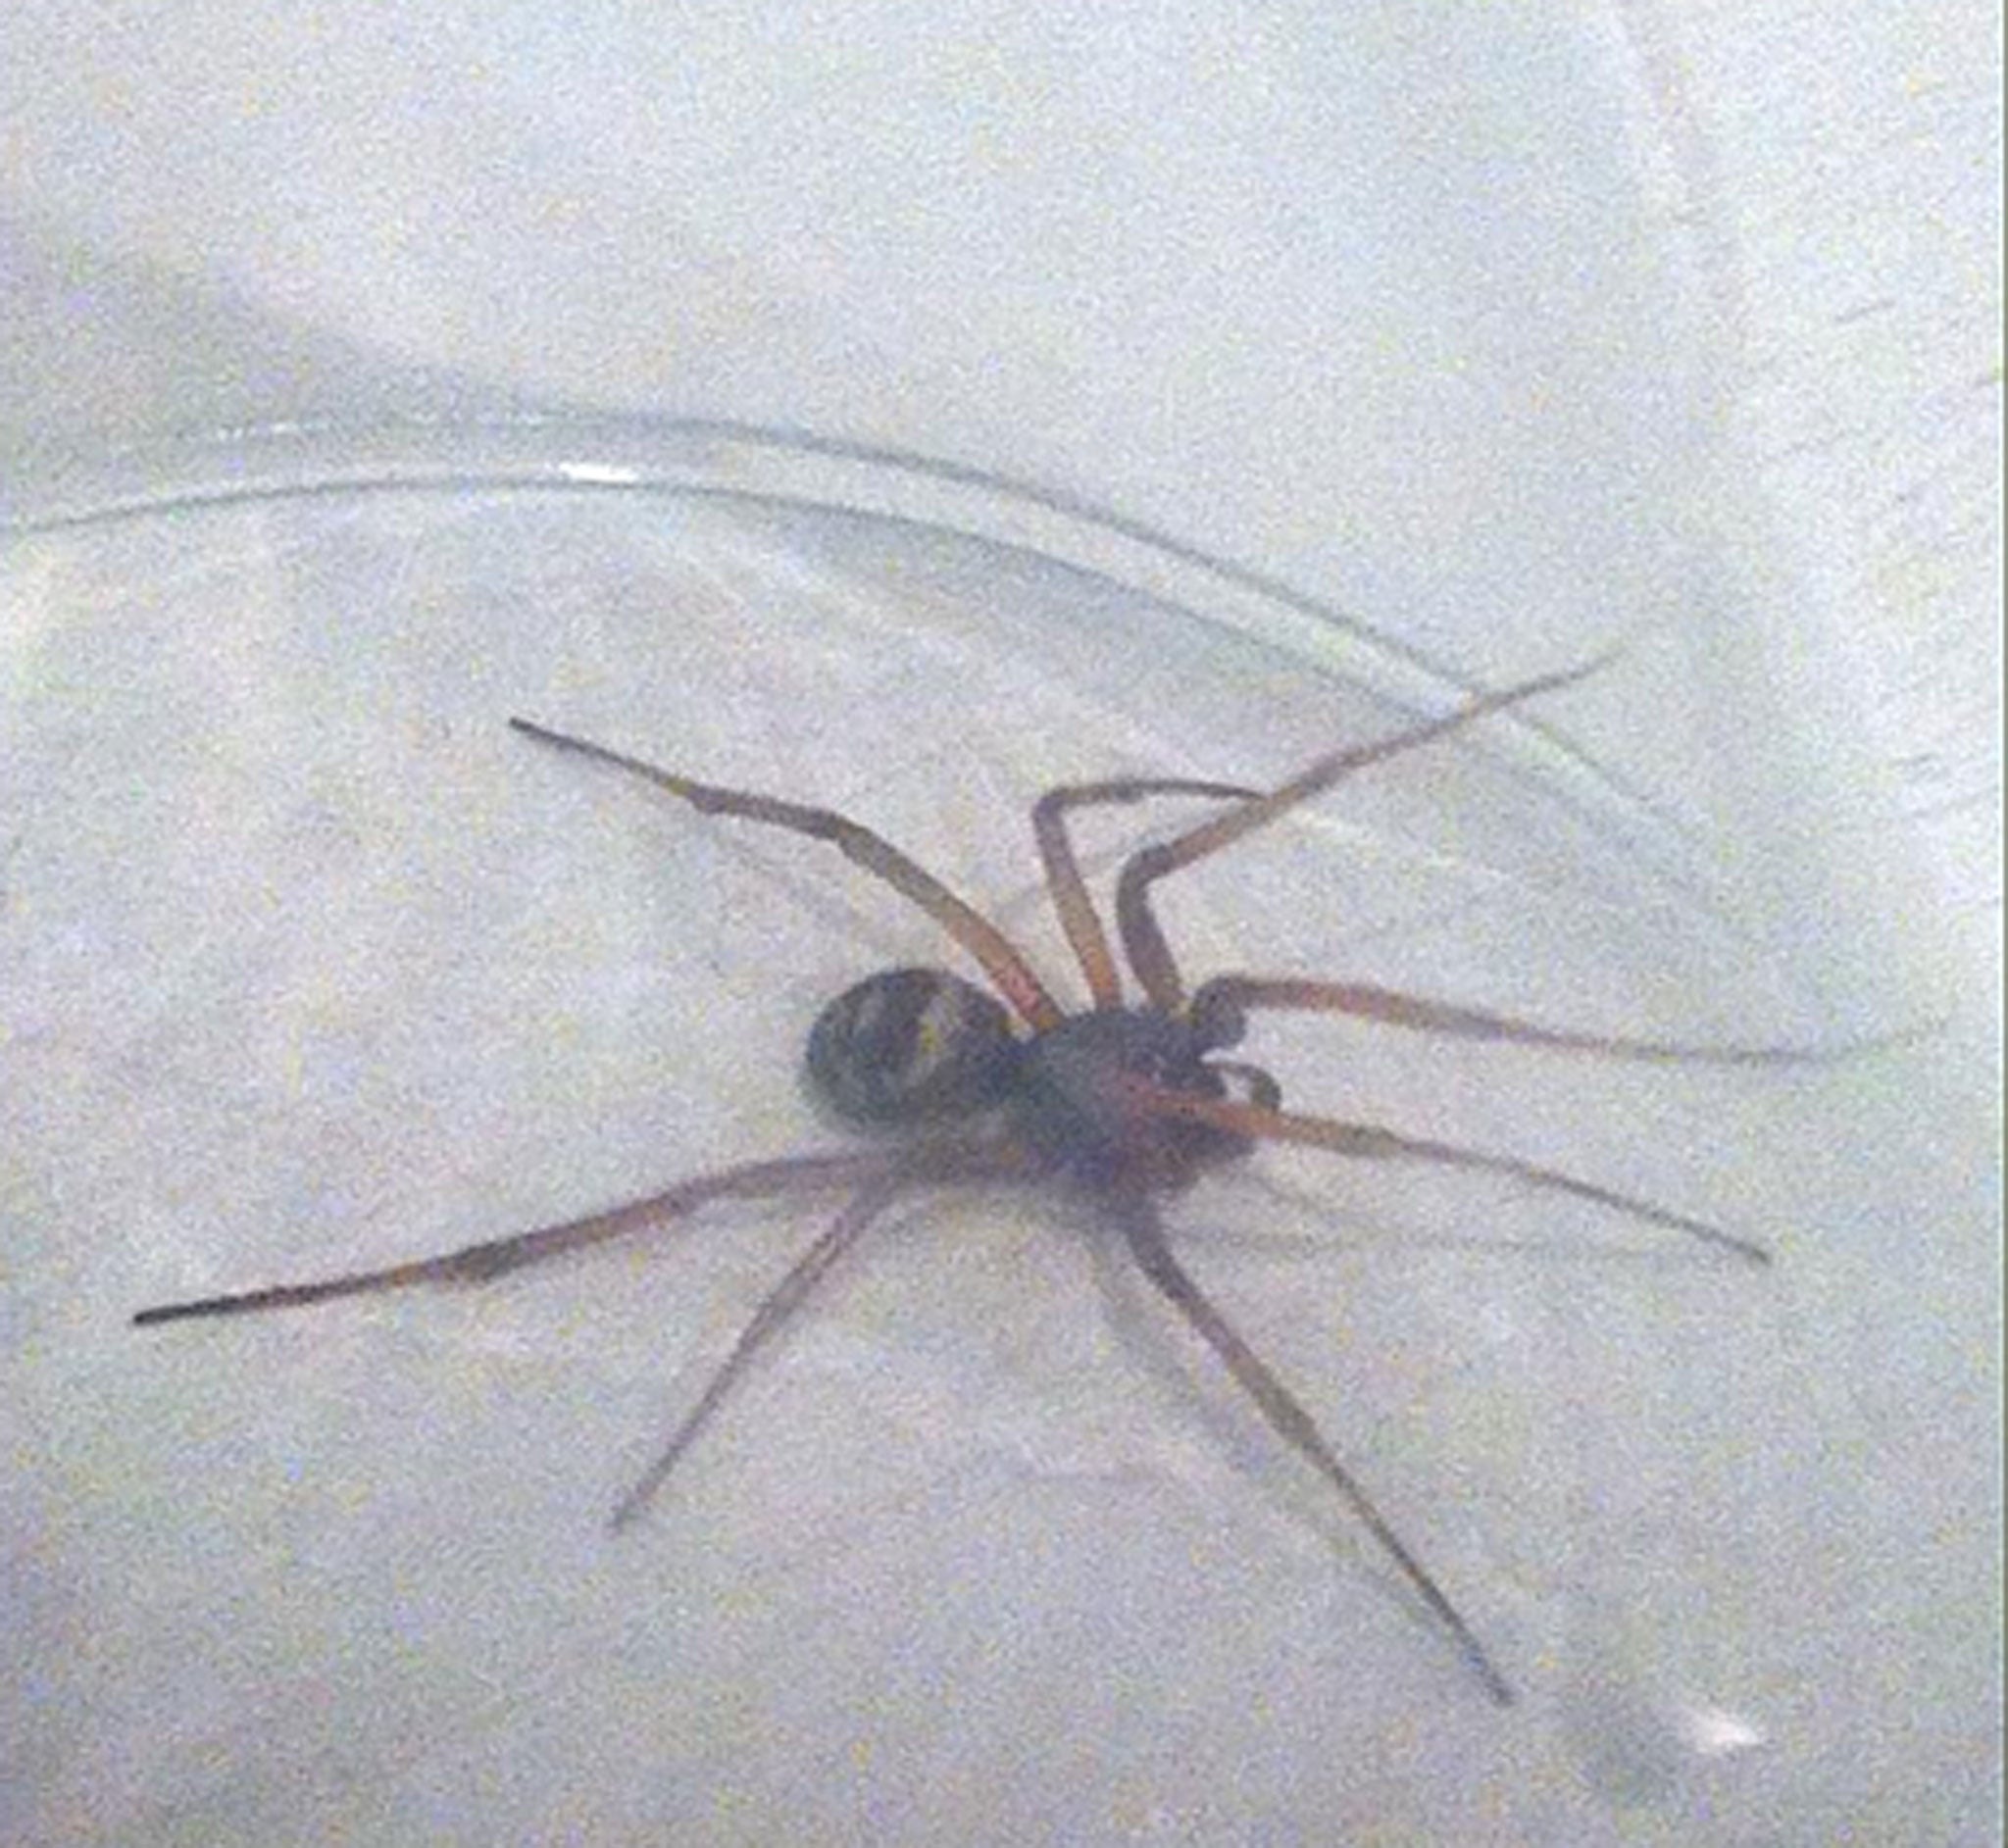 More sightings of the false widow spider as Britains most